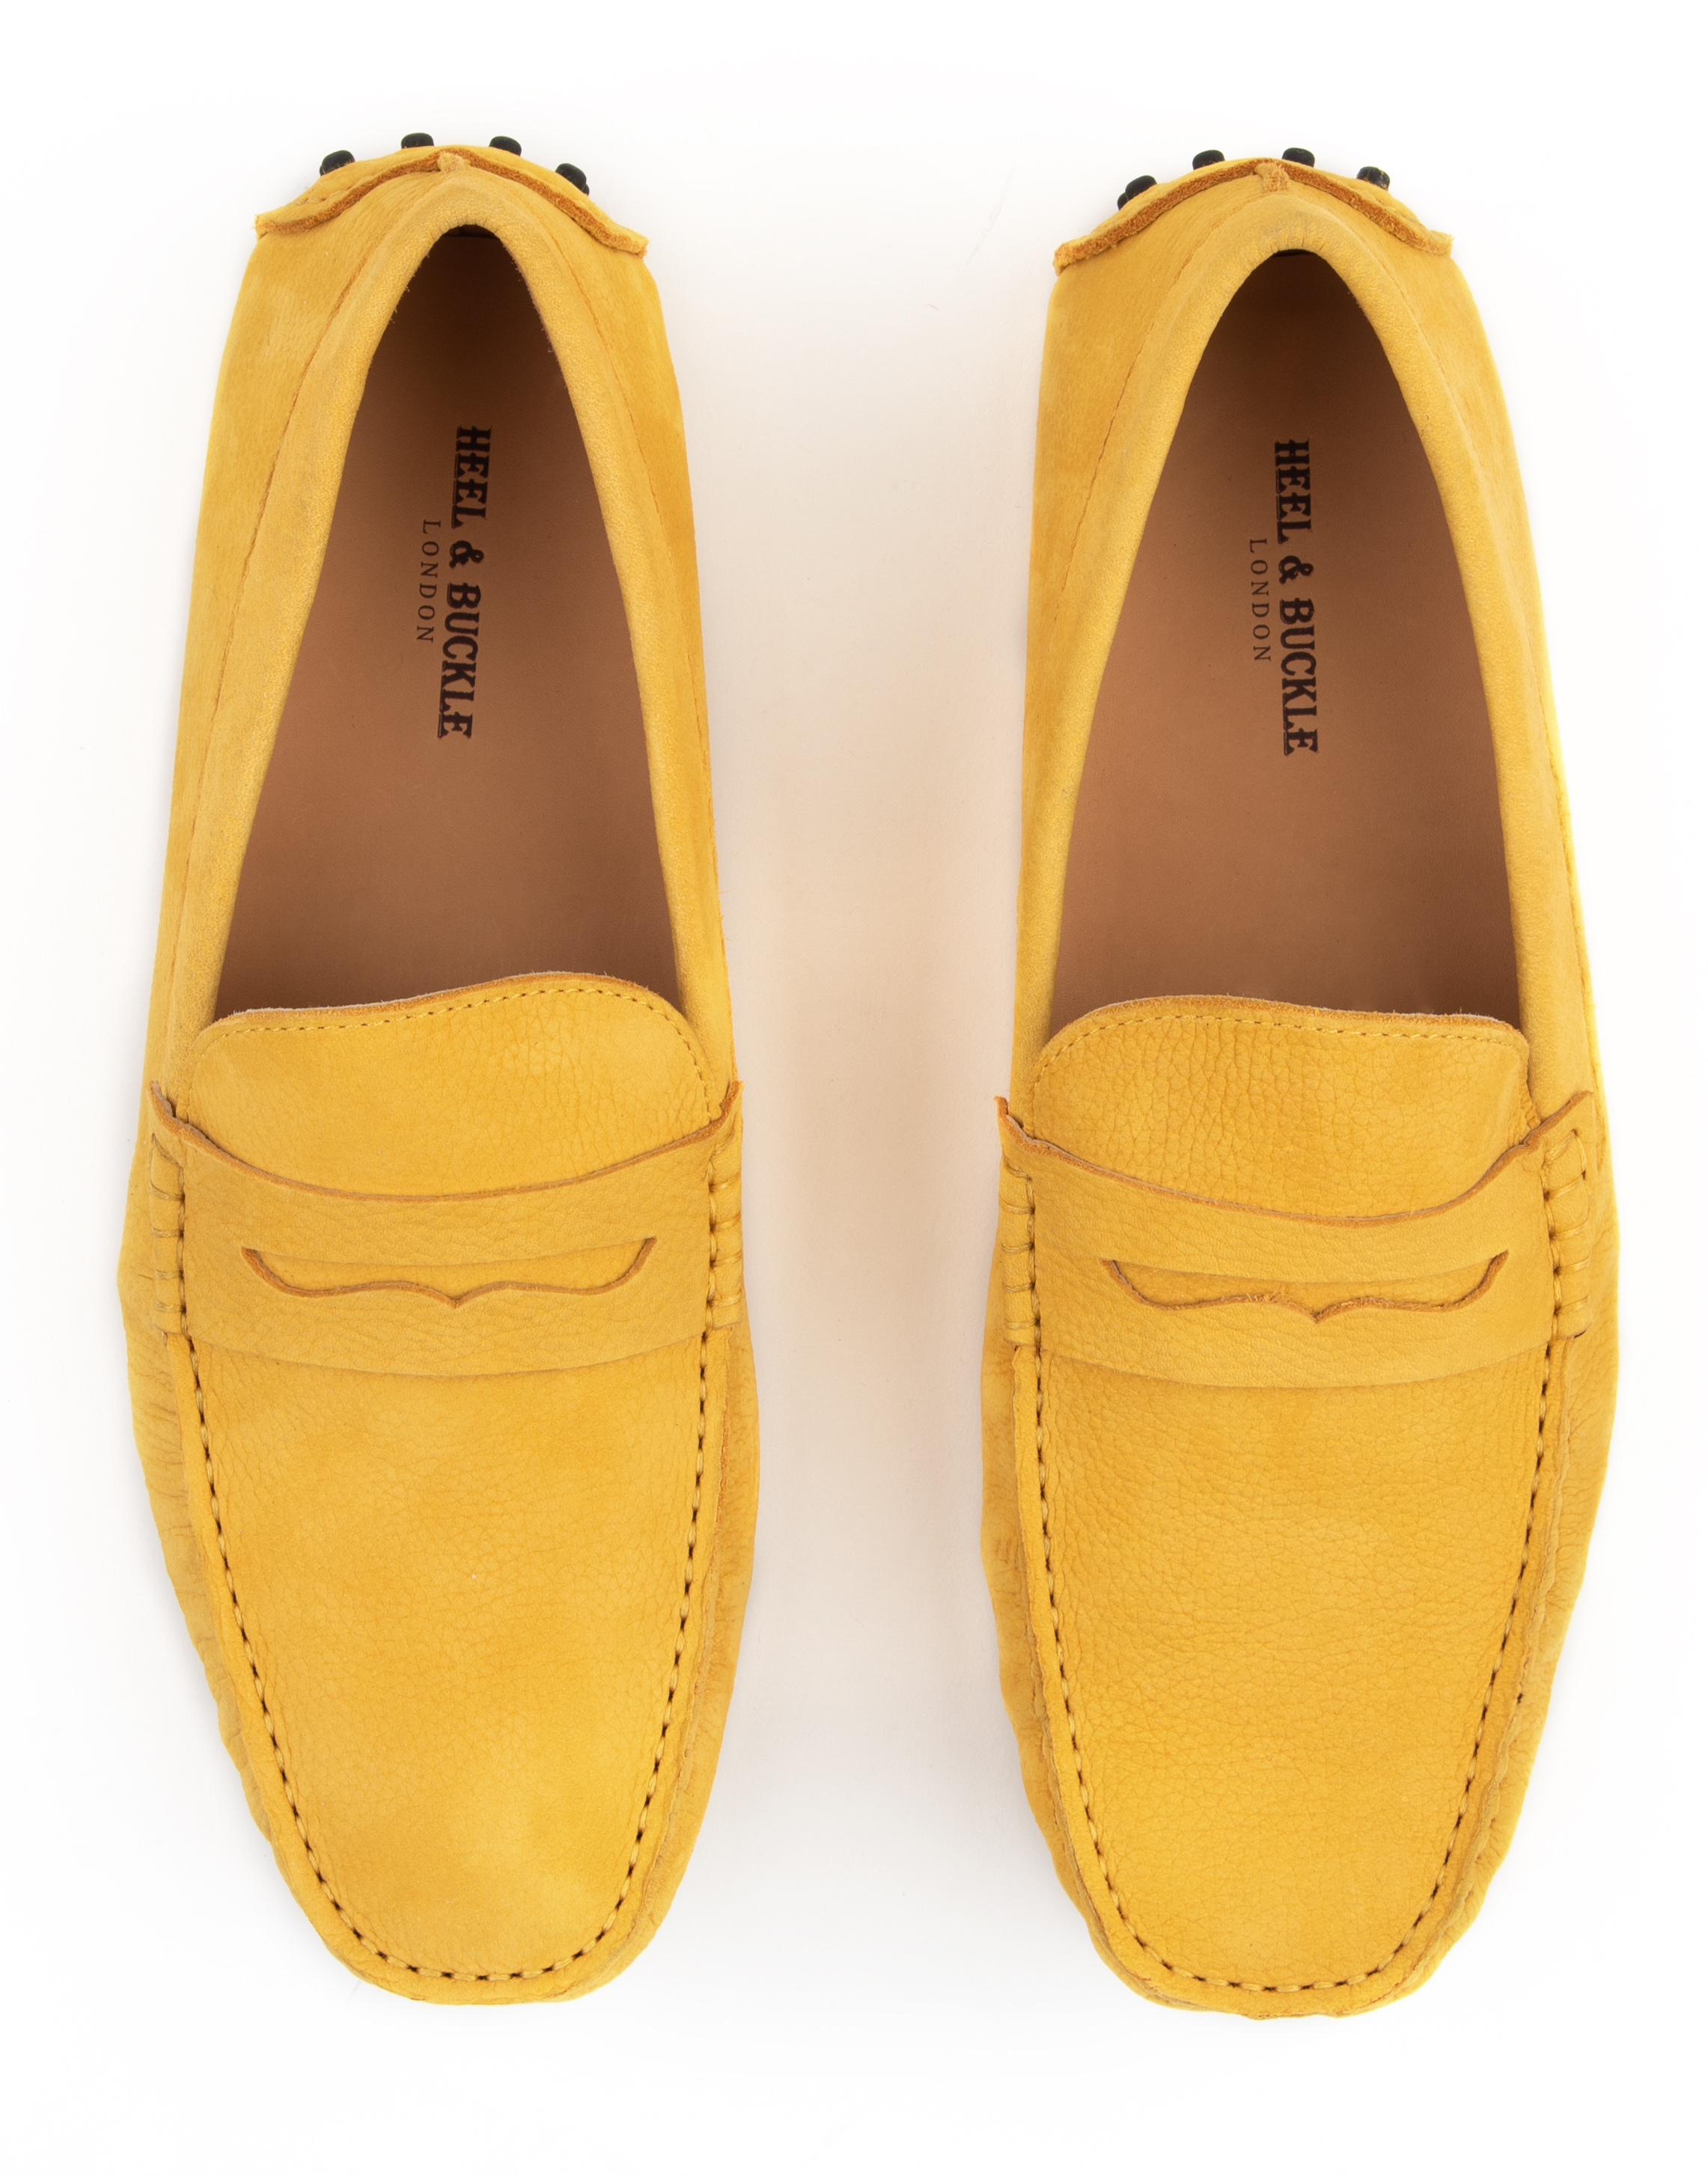 Heel _ Buckle London -Shoes-8838-141-2N-Drivers (Soft Leather)-Yellow with saddle-4